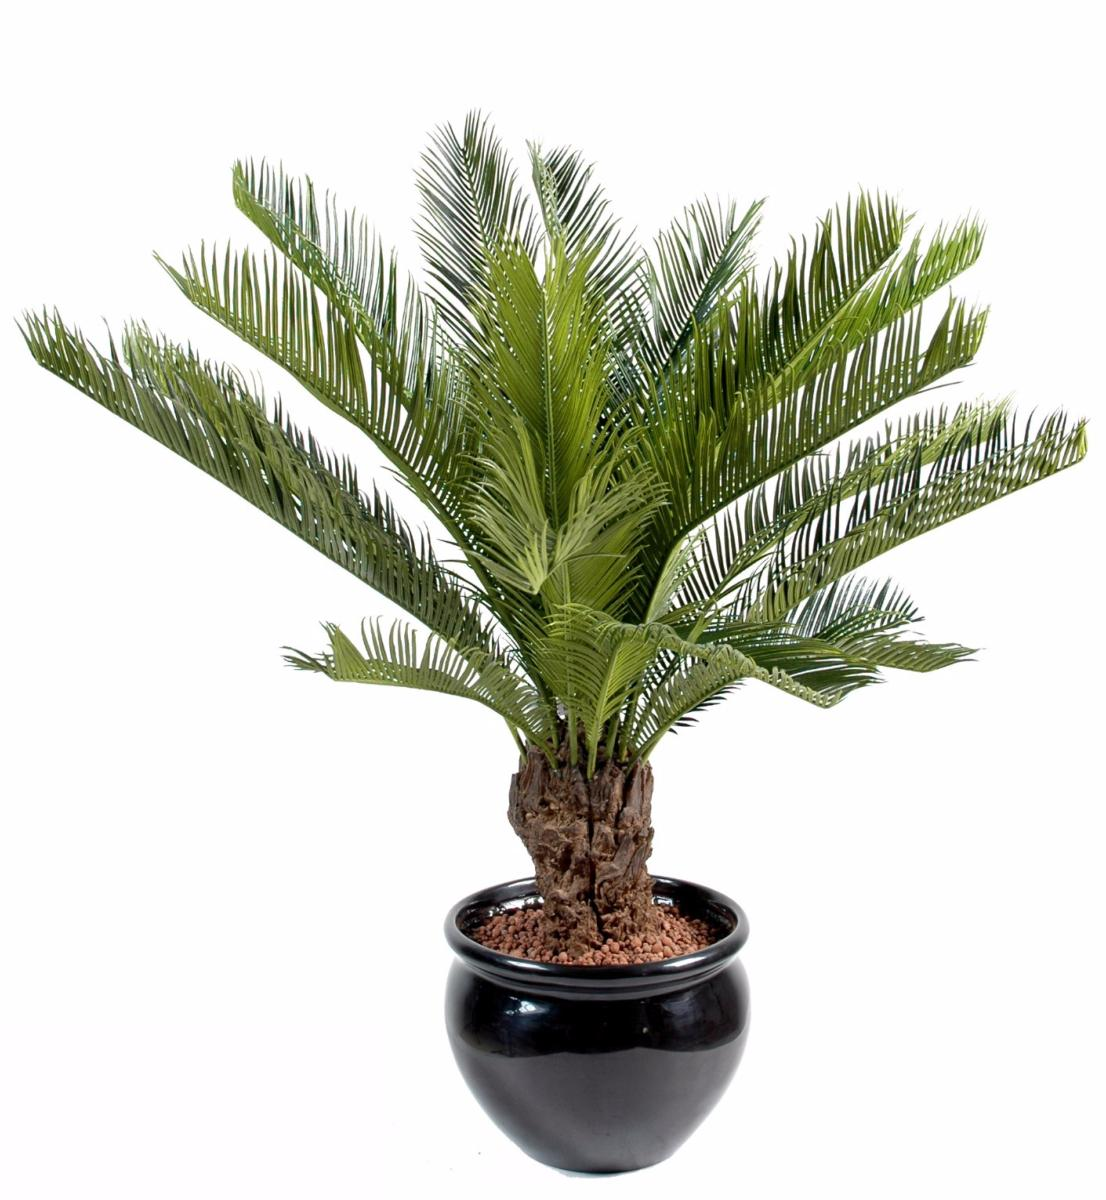 Palmier artificiel cycas tronc plante int rieur for Pot exterieur plante